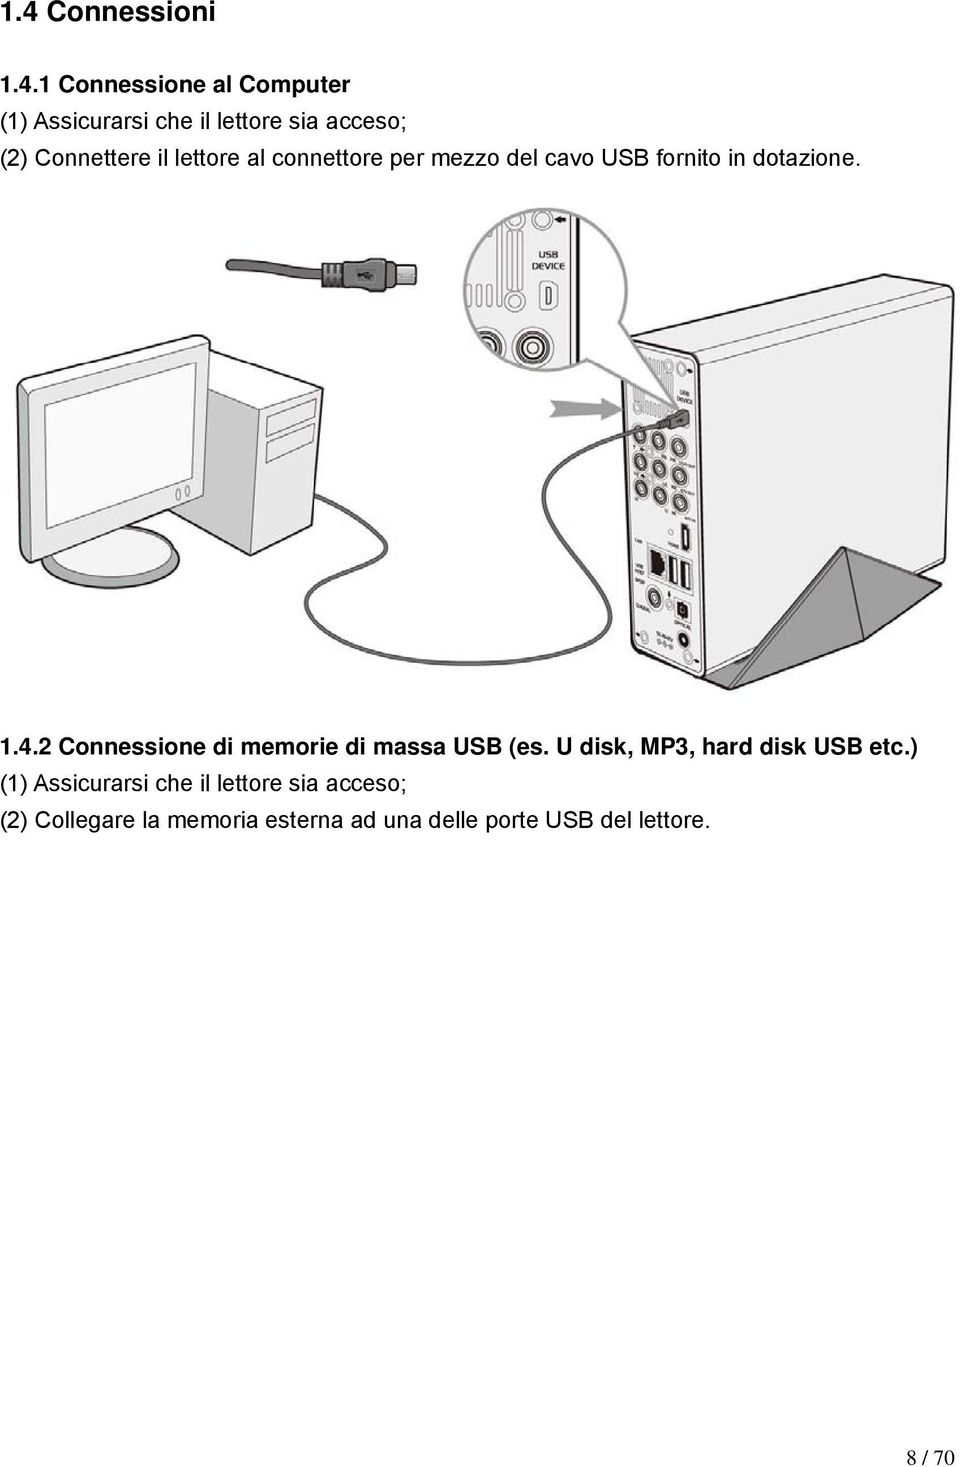 2 Connessione di memorie di massa USB (es. U disk, MP3, hard disk USB etc.